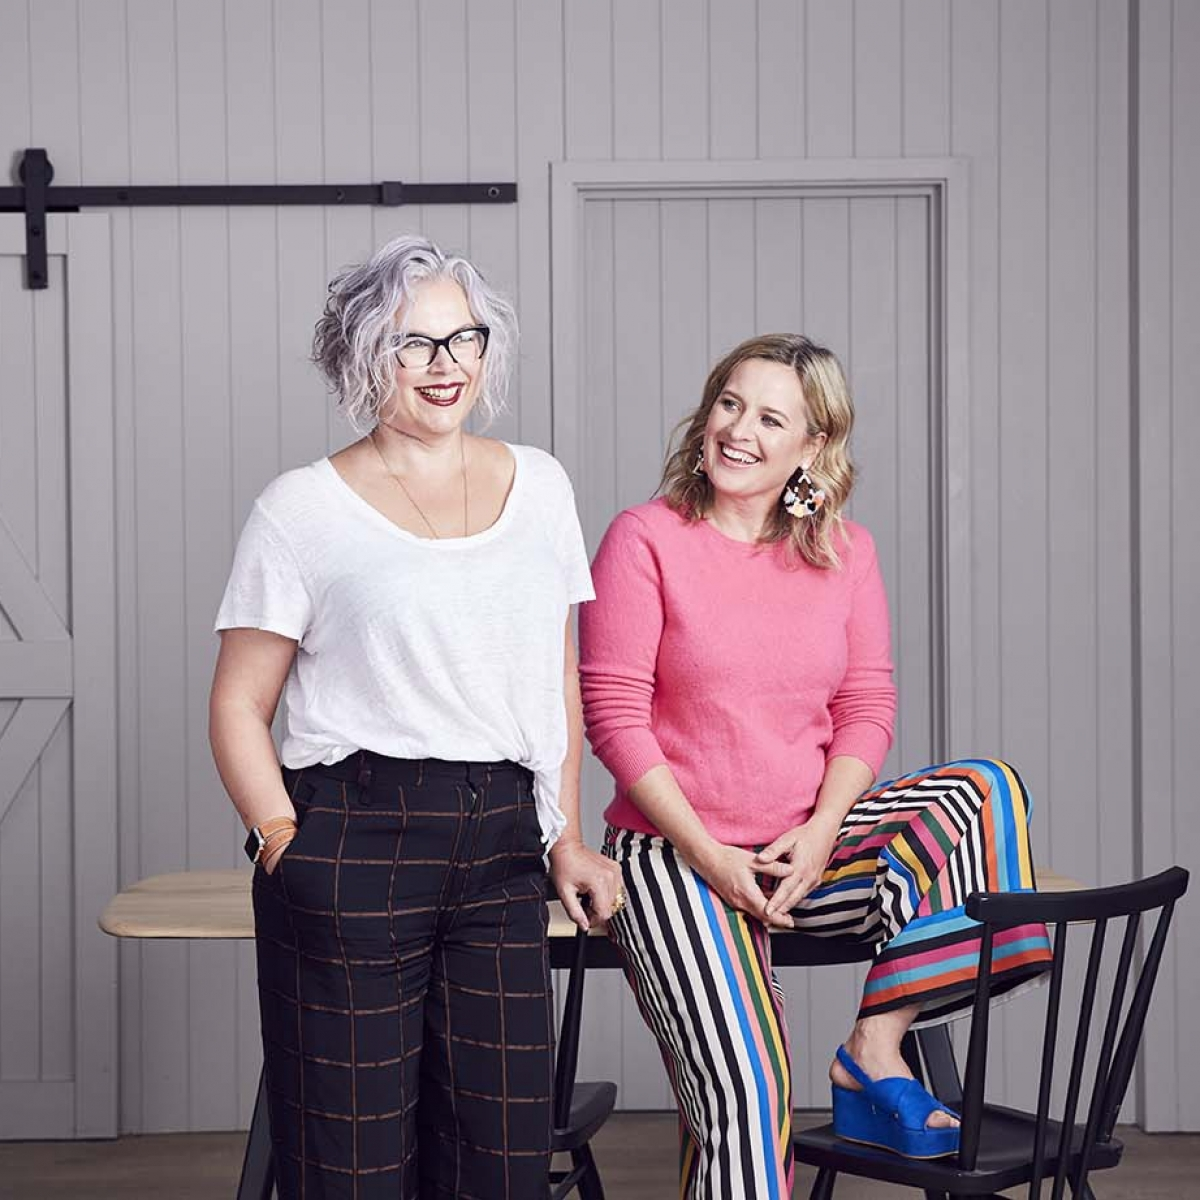 The great Indoors podcats hosts kate watson Smyth and Sophie Robinson discuss why white paint is a bad choice for interior design and decoration, how to plan an open place space and how to shop consciously for your home decor